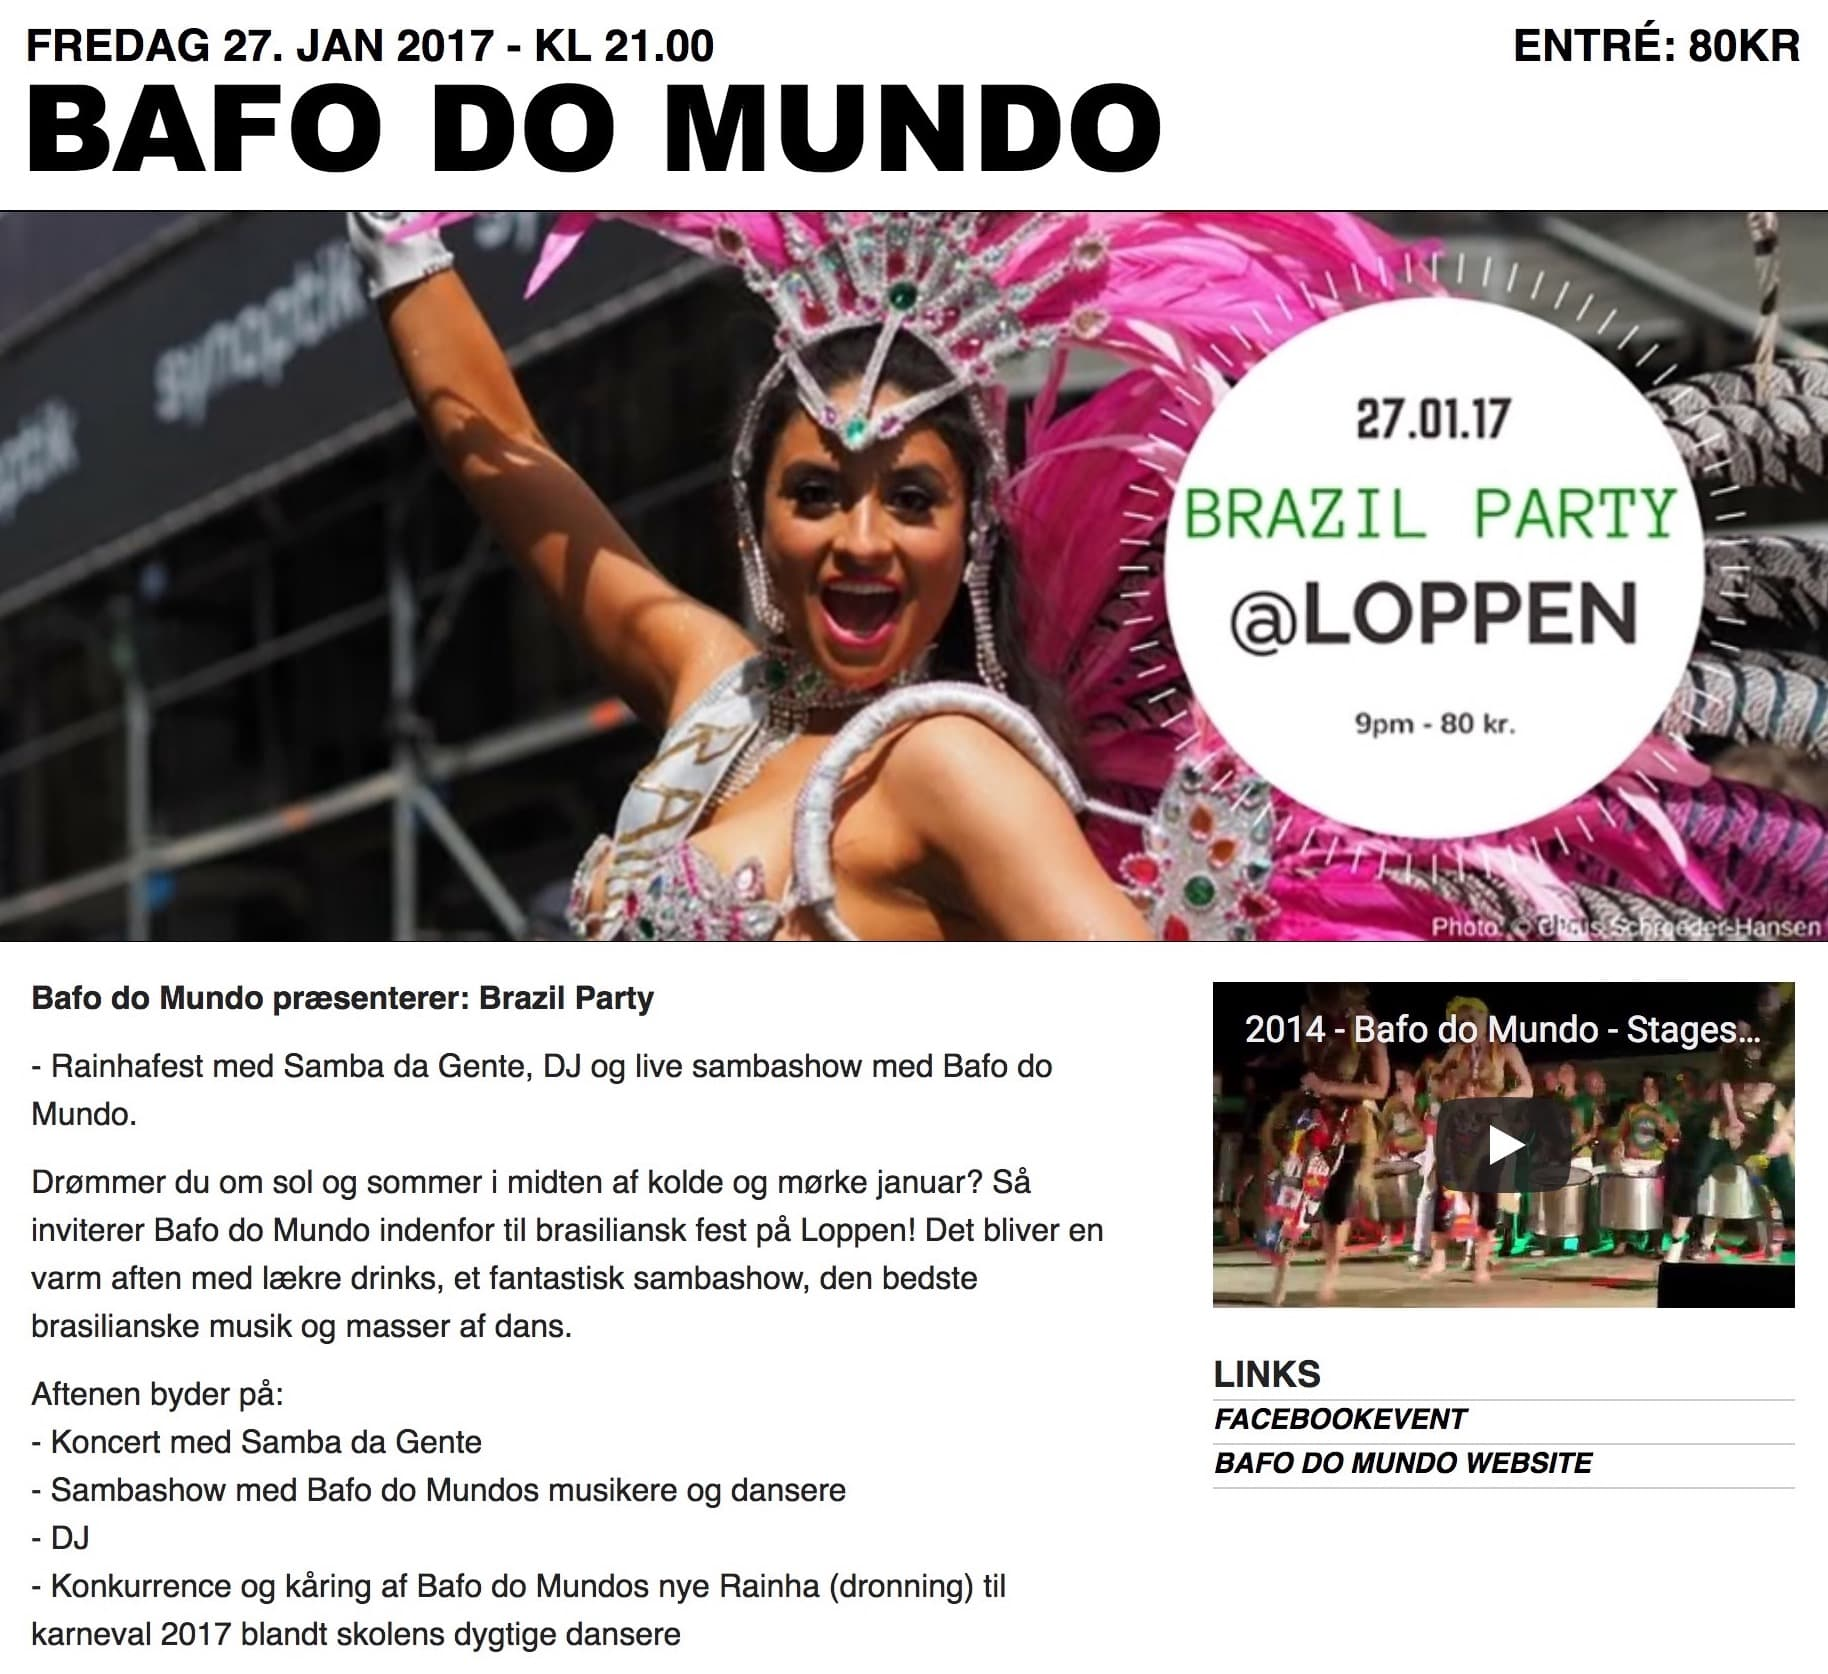 Bafo do Mundo holder fest!